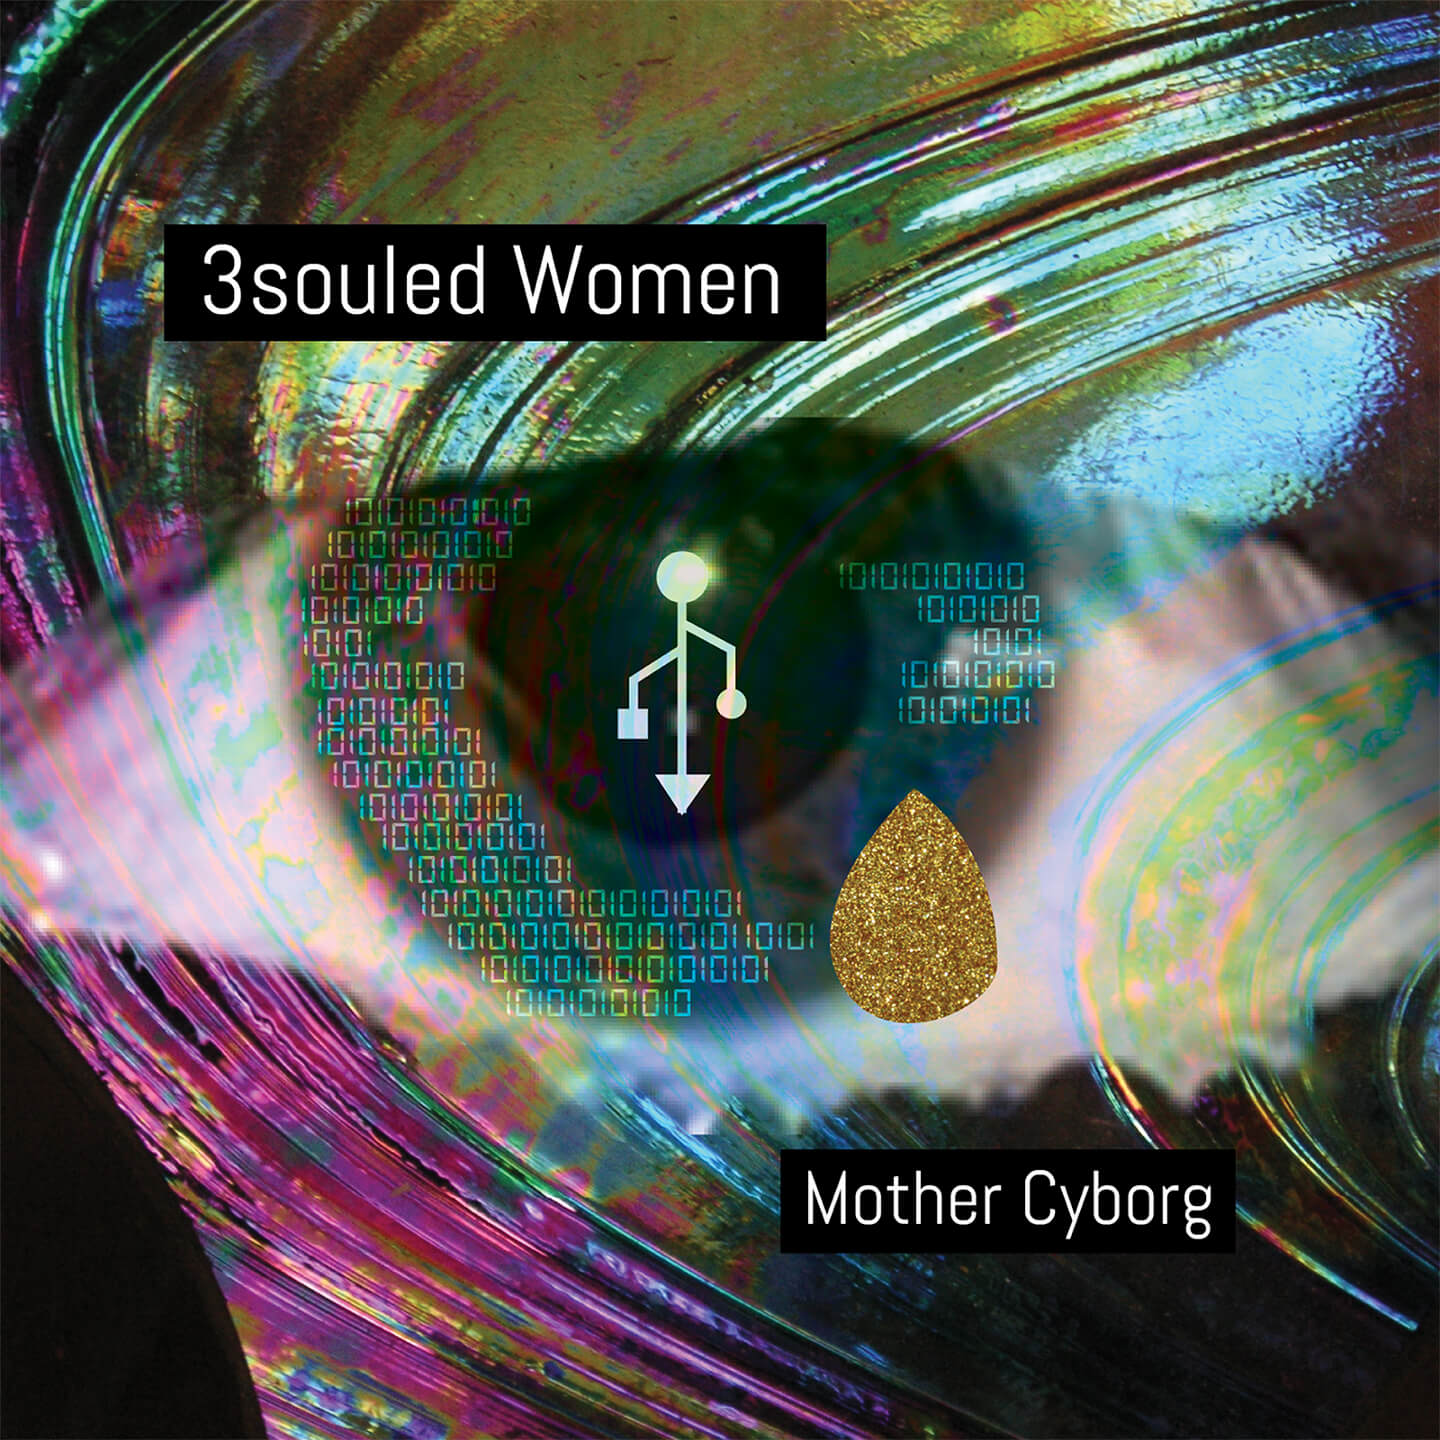 MOTHER_CYBORG_3Souled_Women_PinkLizardMusic_medium